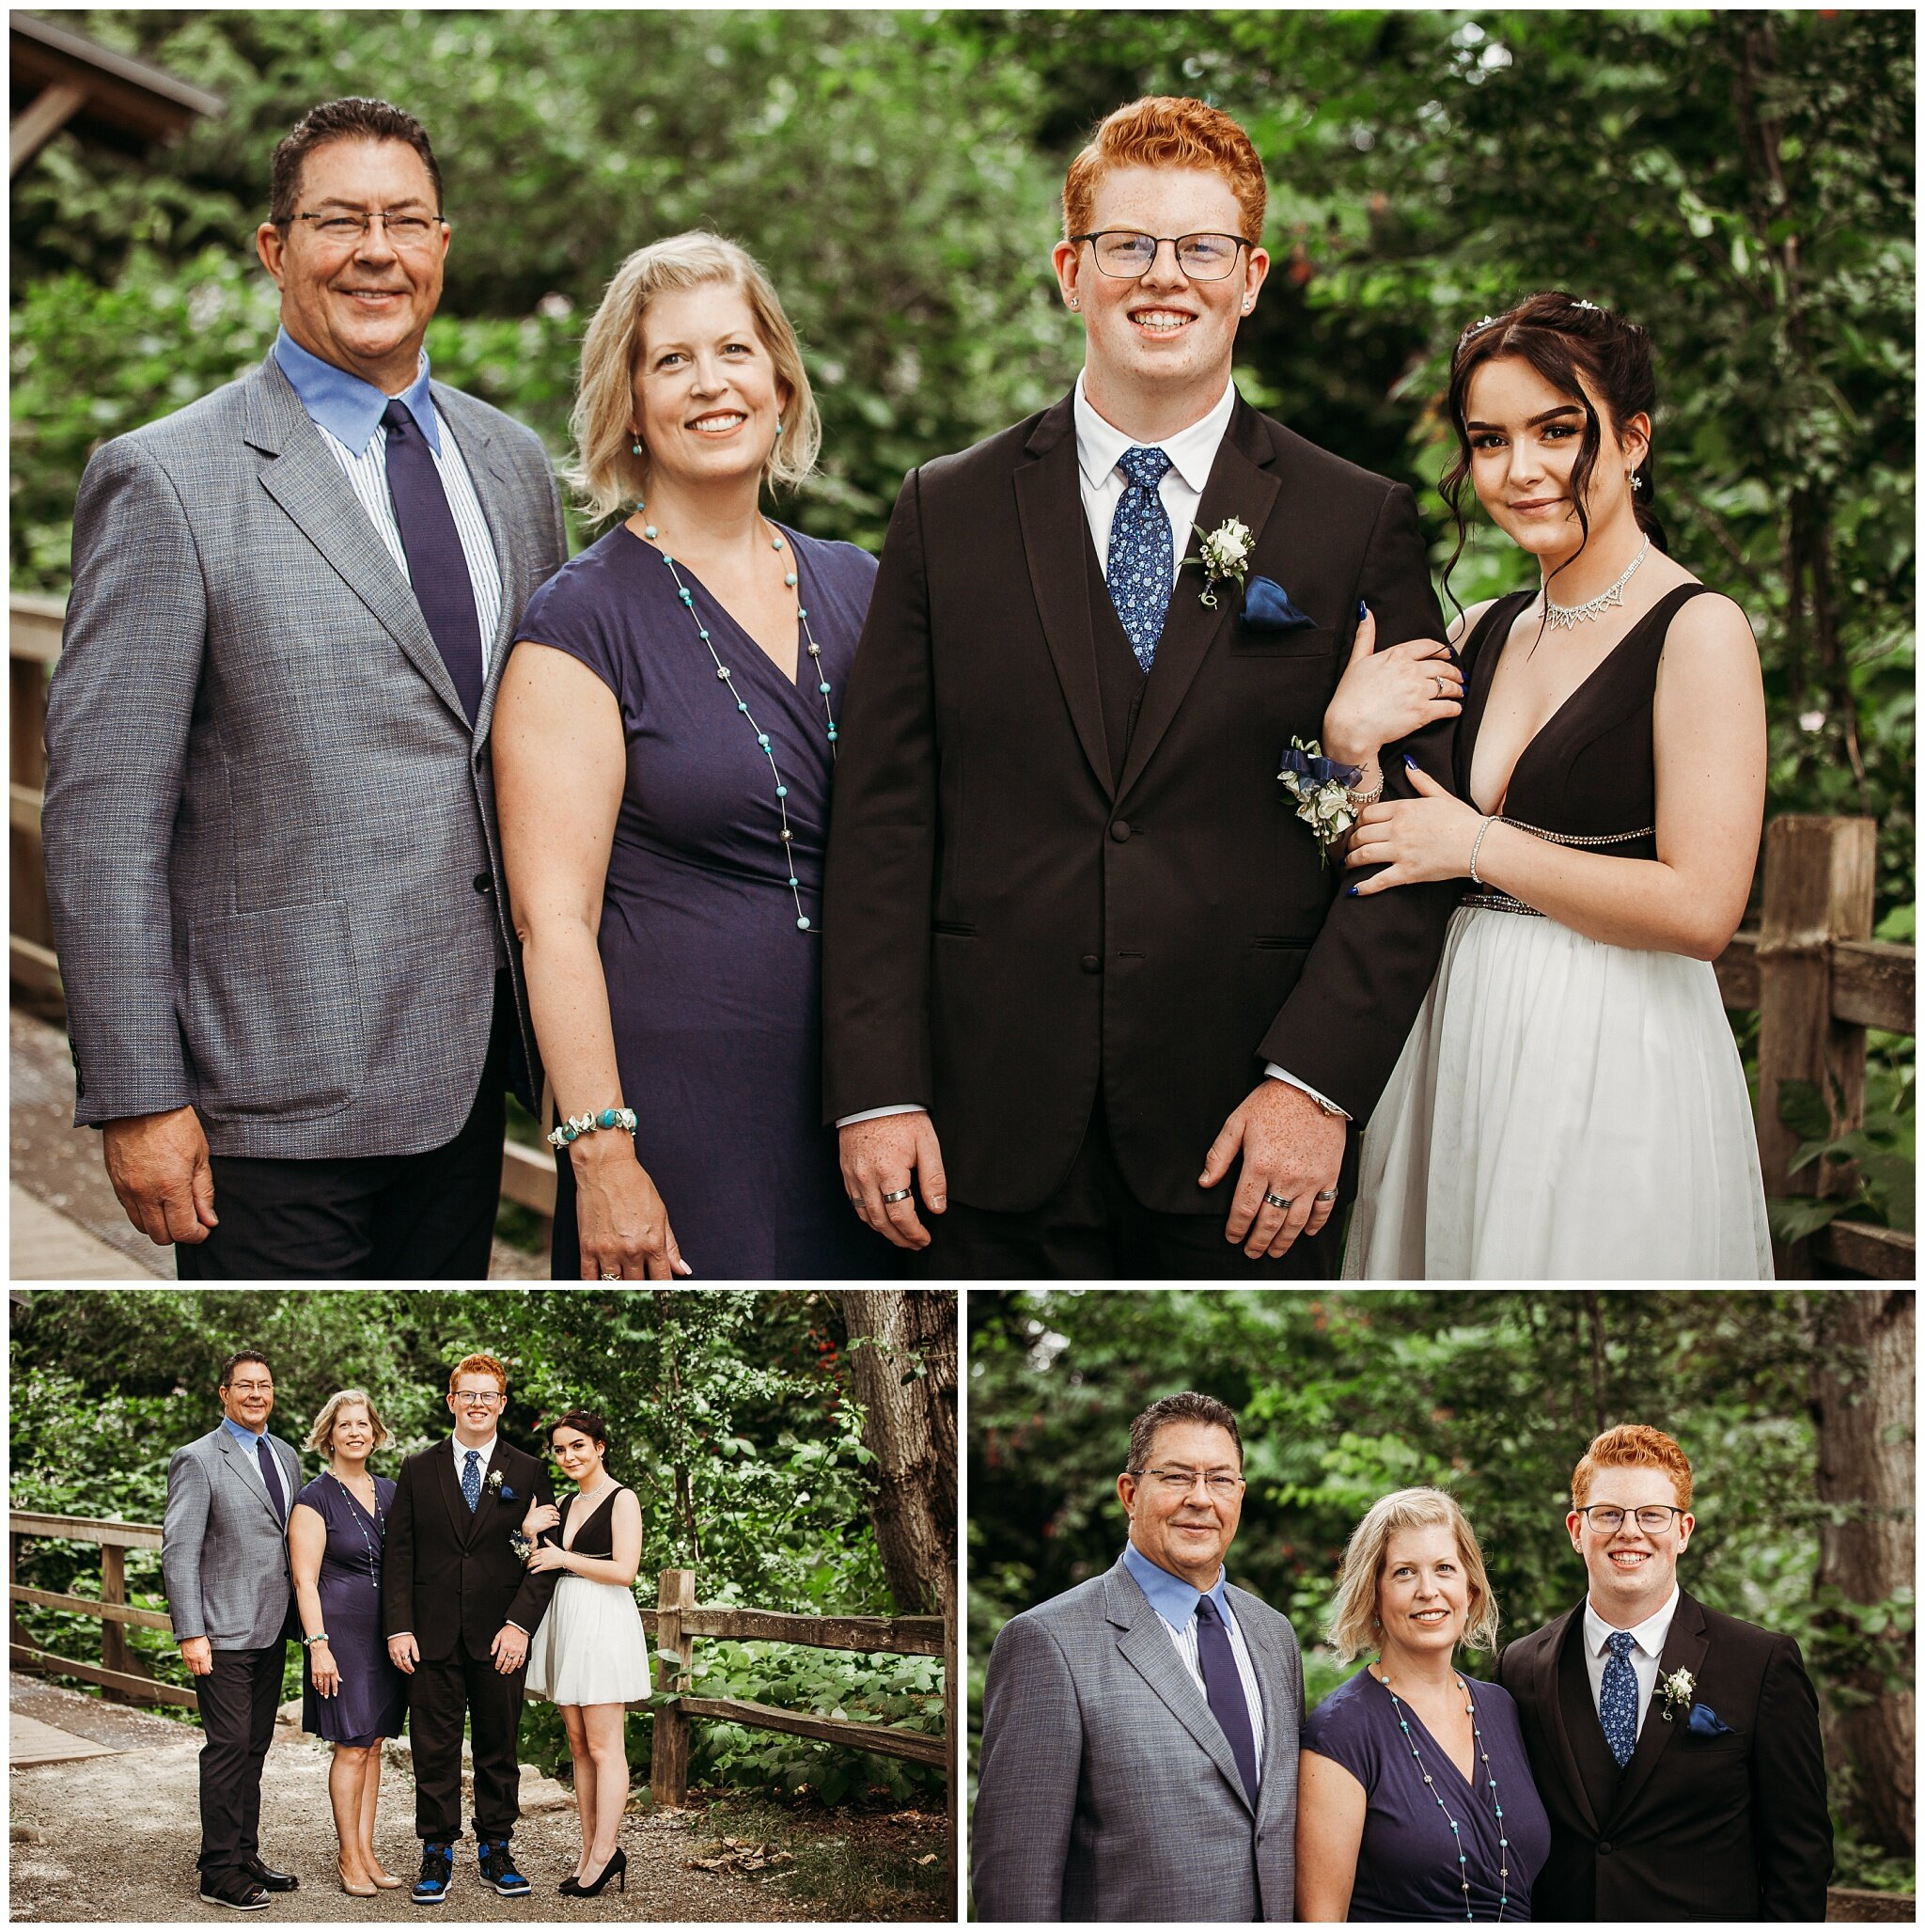 Chilliwack Highschool Prom Graduation Photographer 2019 Abbotsford fun bright_0001.jpg